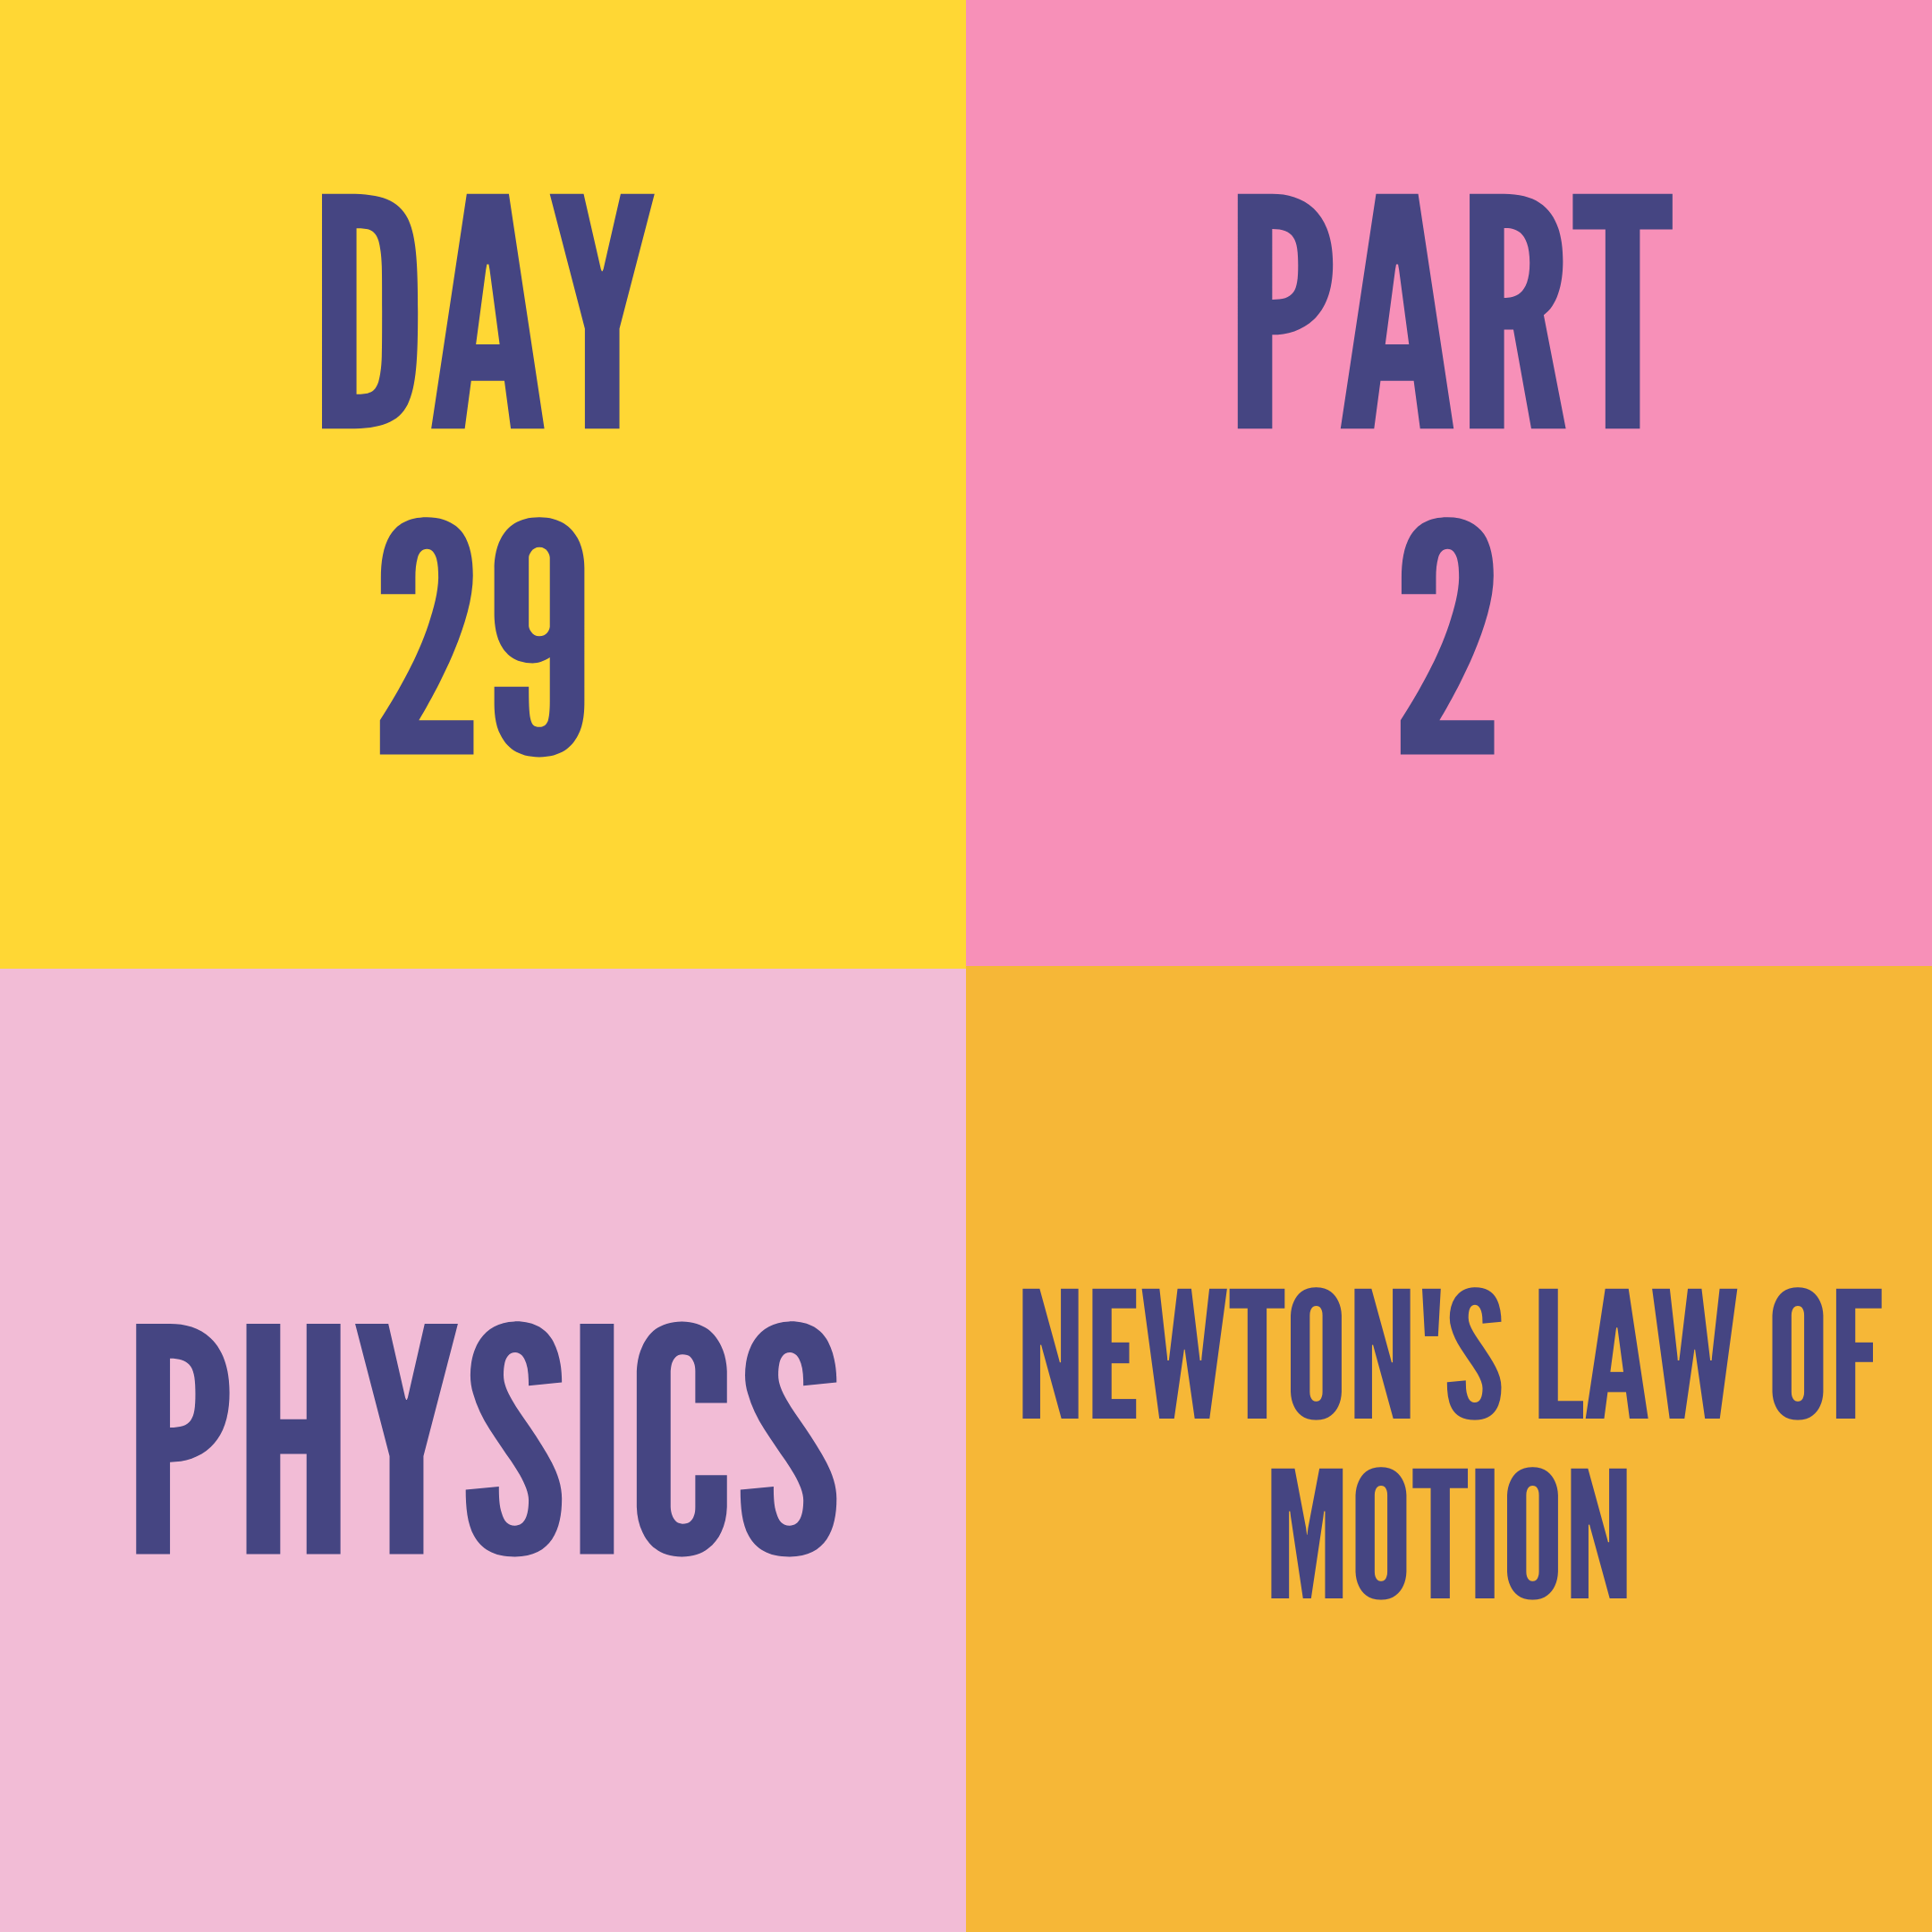 DAY-29 PART-2 NEWTON'S LAW OF MOTION